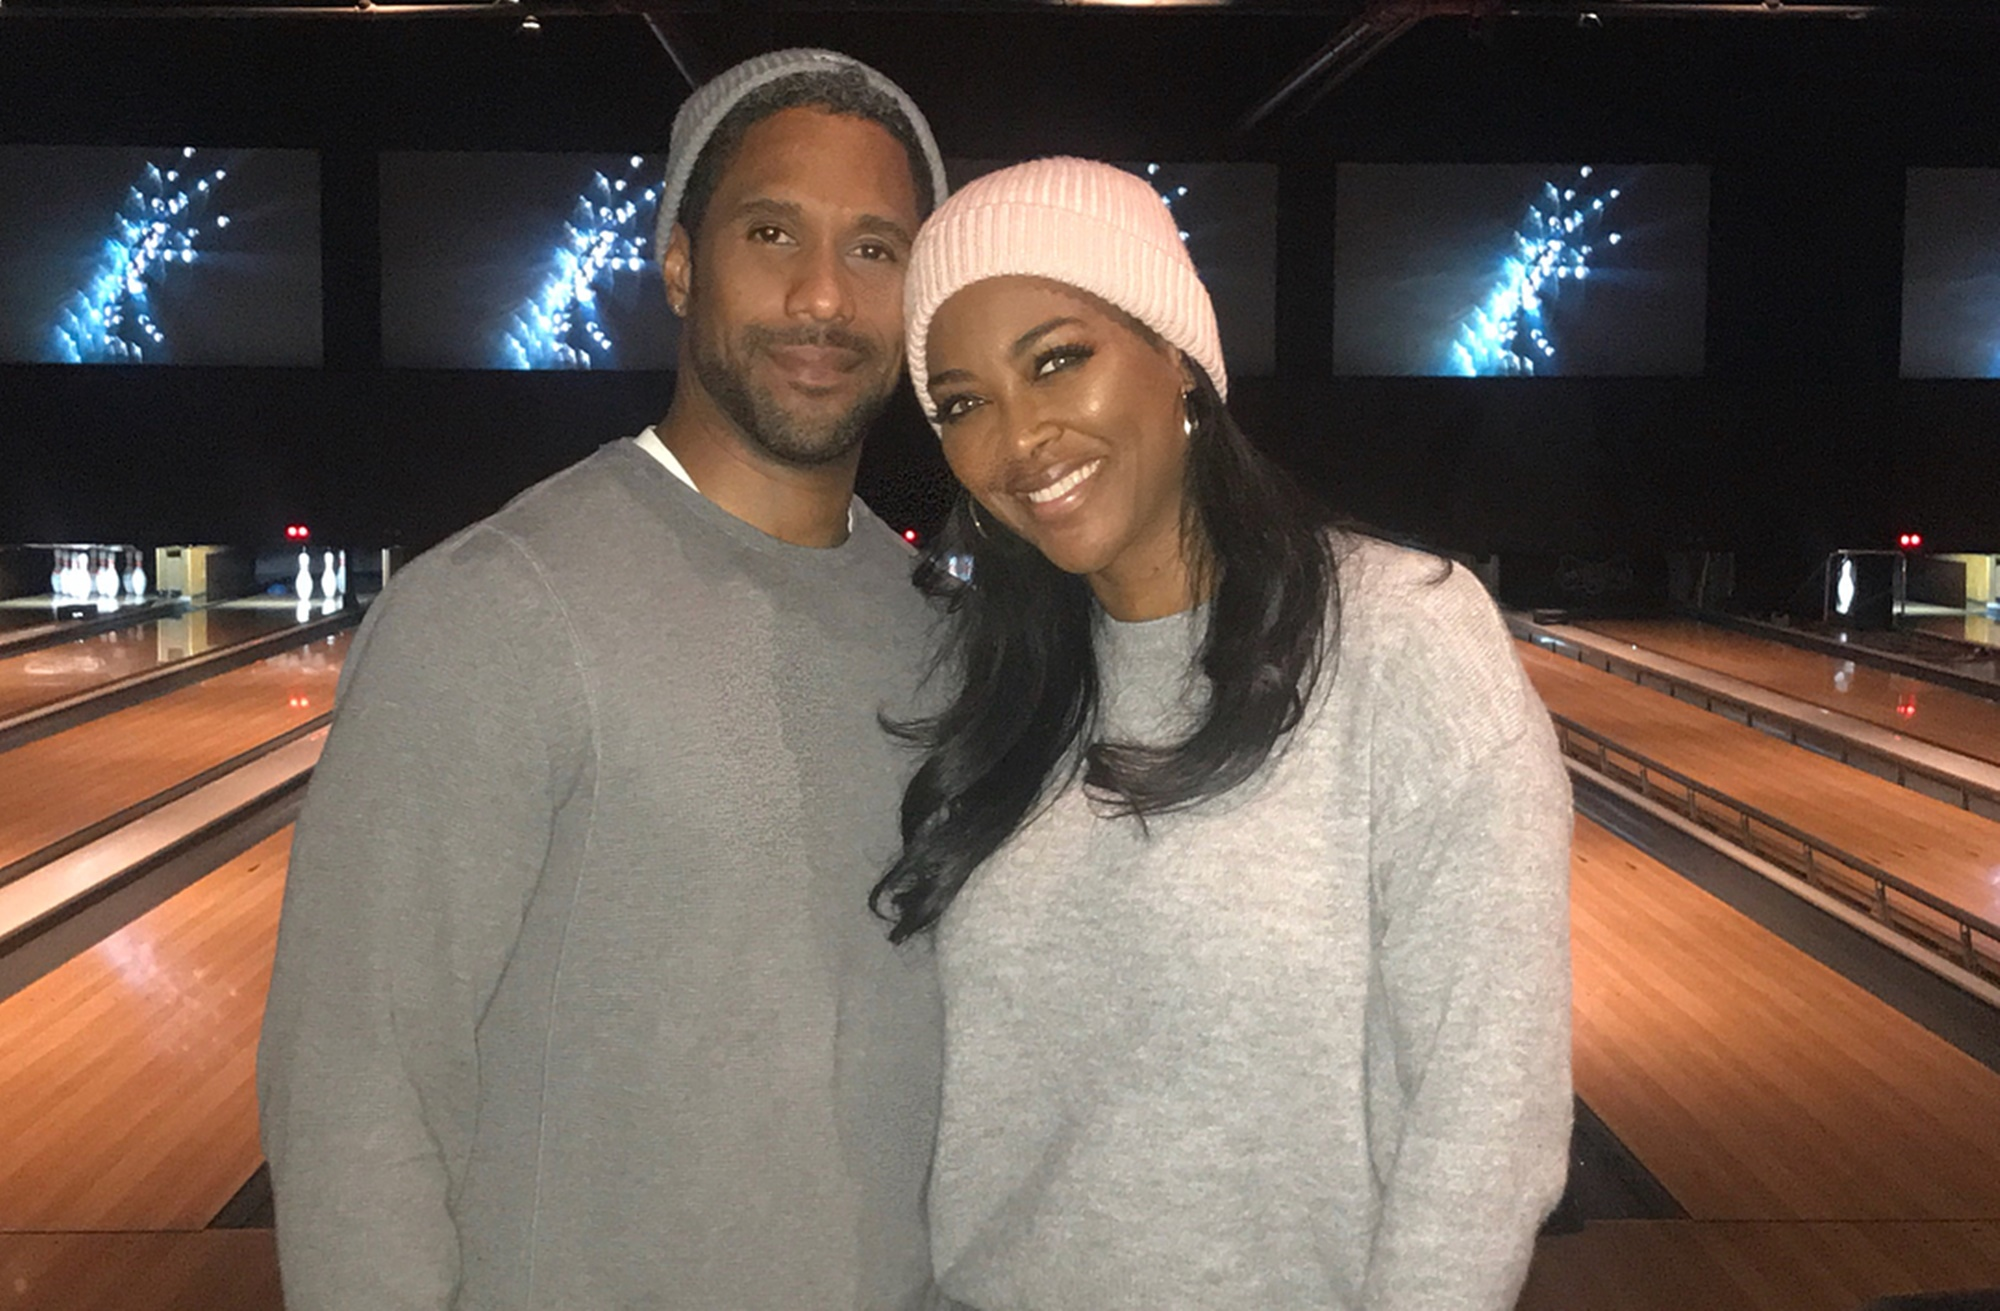 Kenya Moore's Latest Photo With Her Husband Marc Daly And Their Baby Girl Brooklyn Is Praised By Fans - See It Here